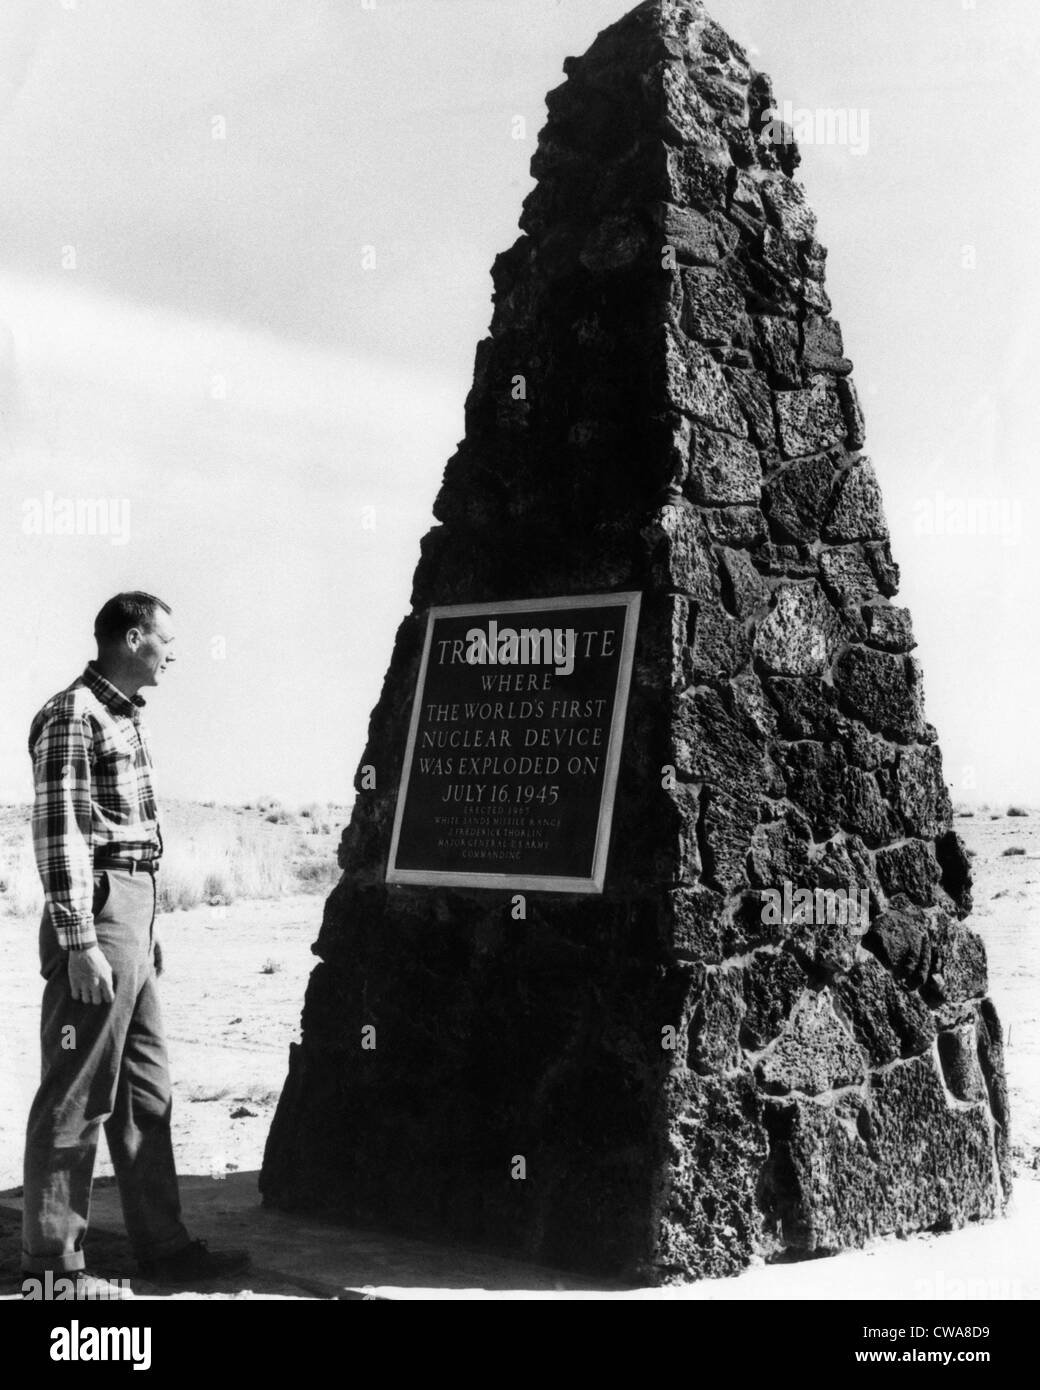 A man reading the plaque on a monument at The Trinity Site, where the first atomic explosion took place, Socorro, Stock Photo